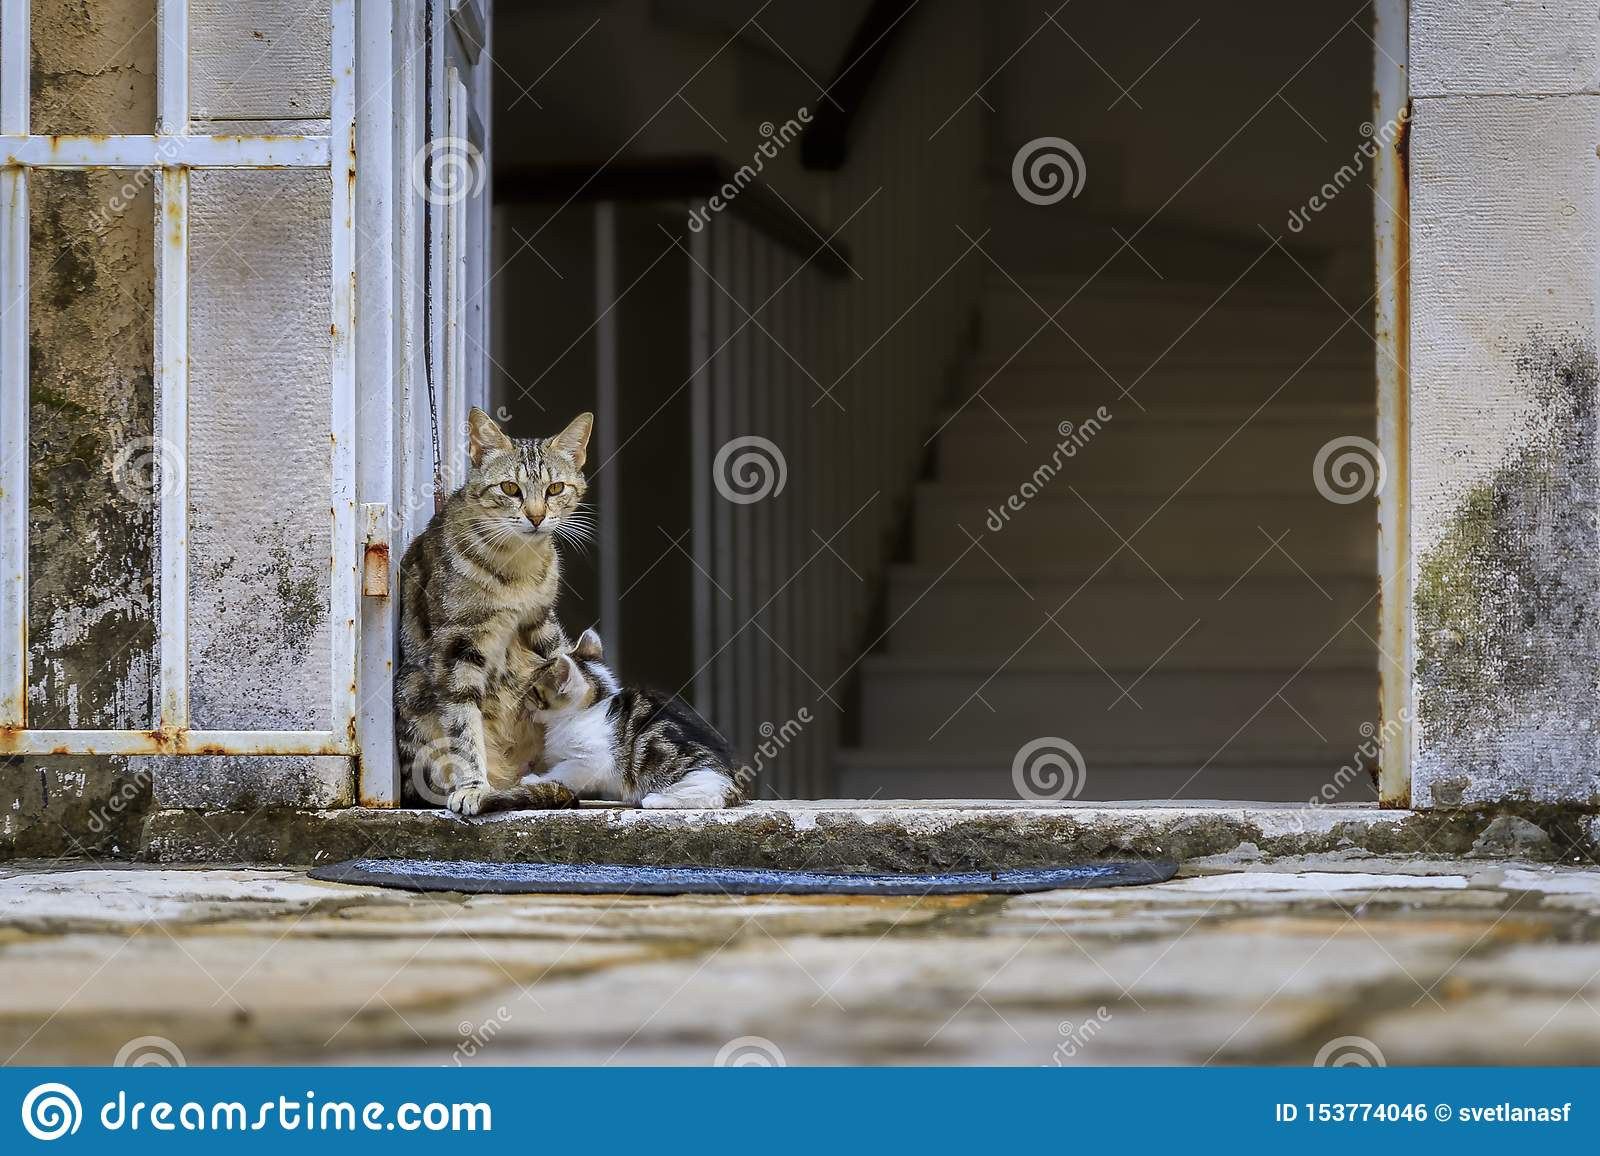 Cute feral alley mama cat feeding the baby kitten in Budva medieval Old Town outside an old house in Montenegro, Balkans